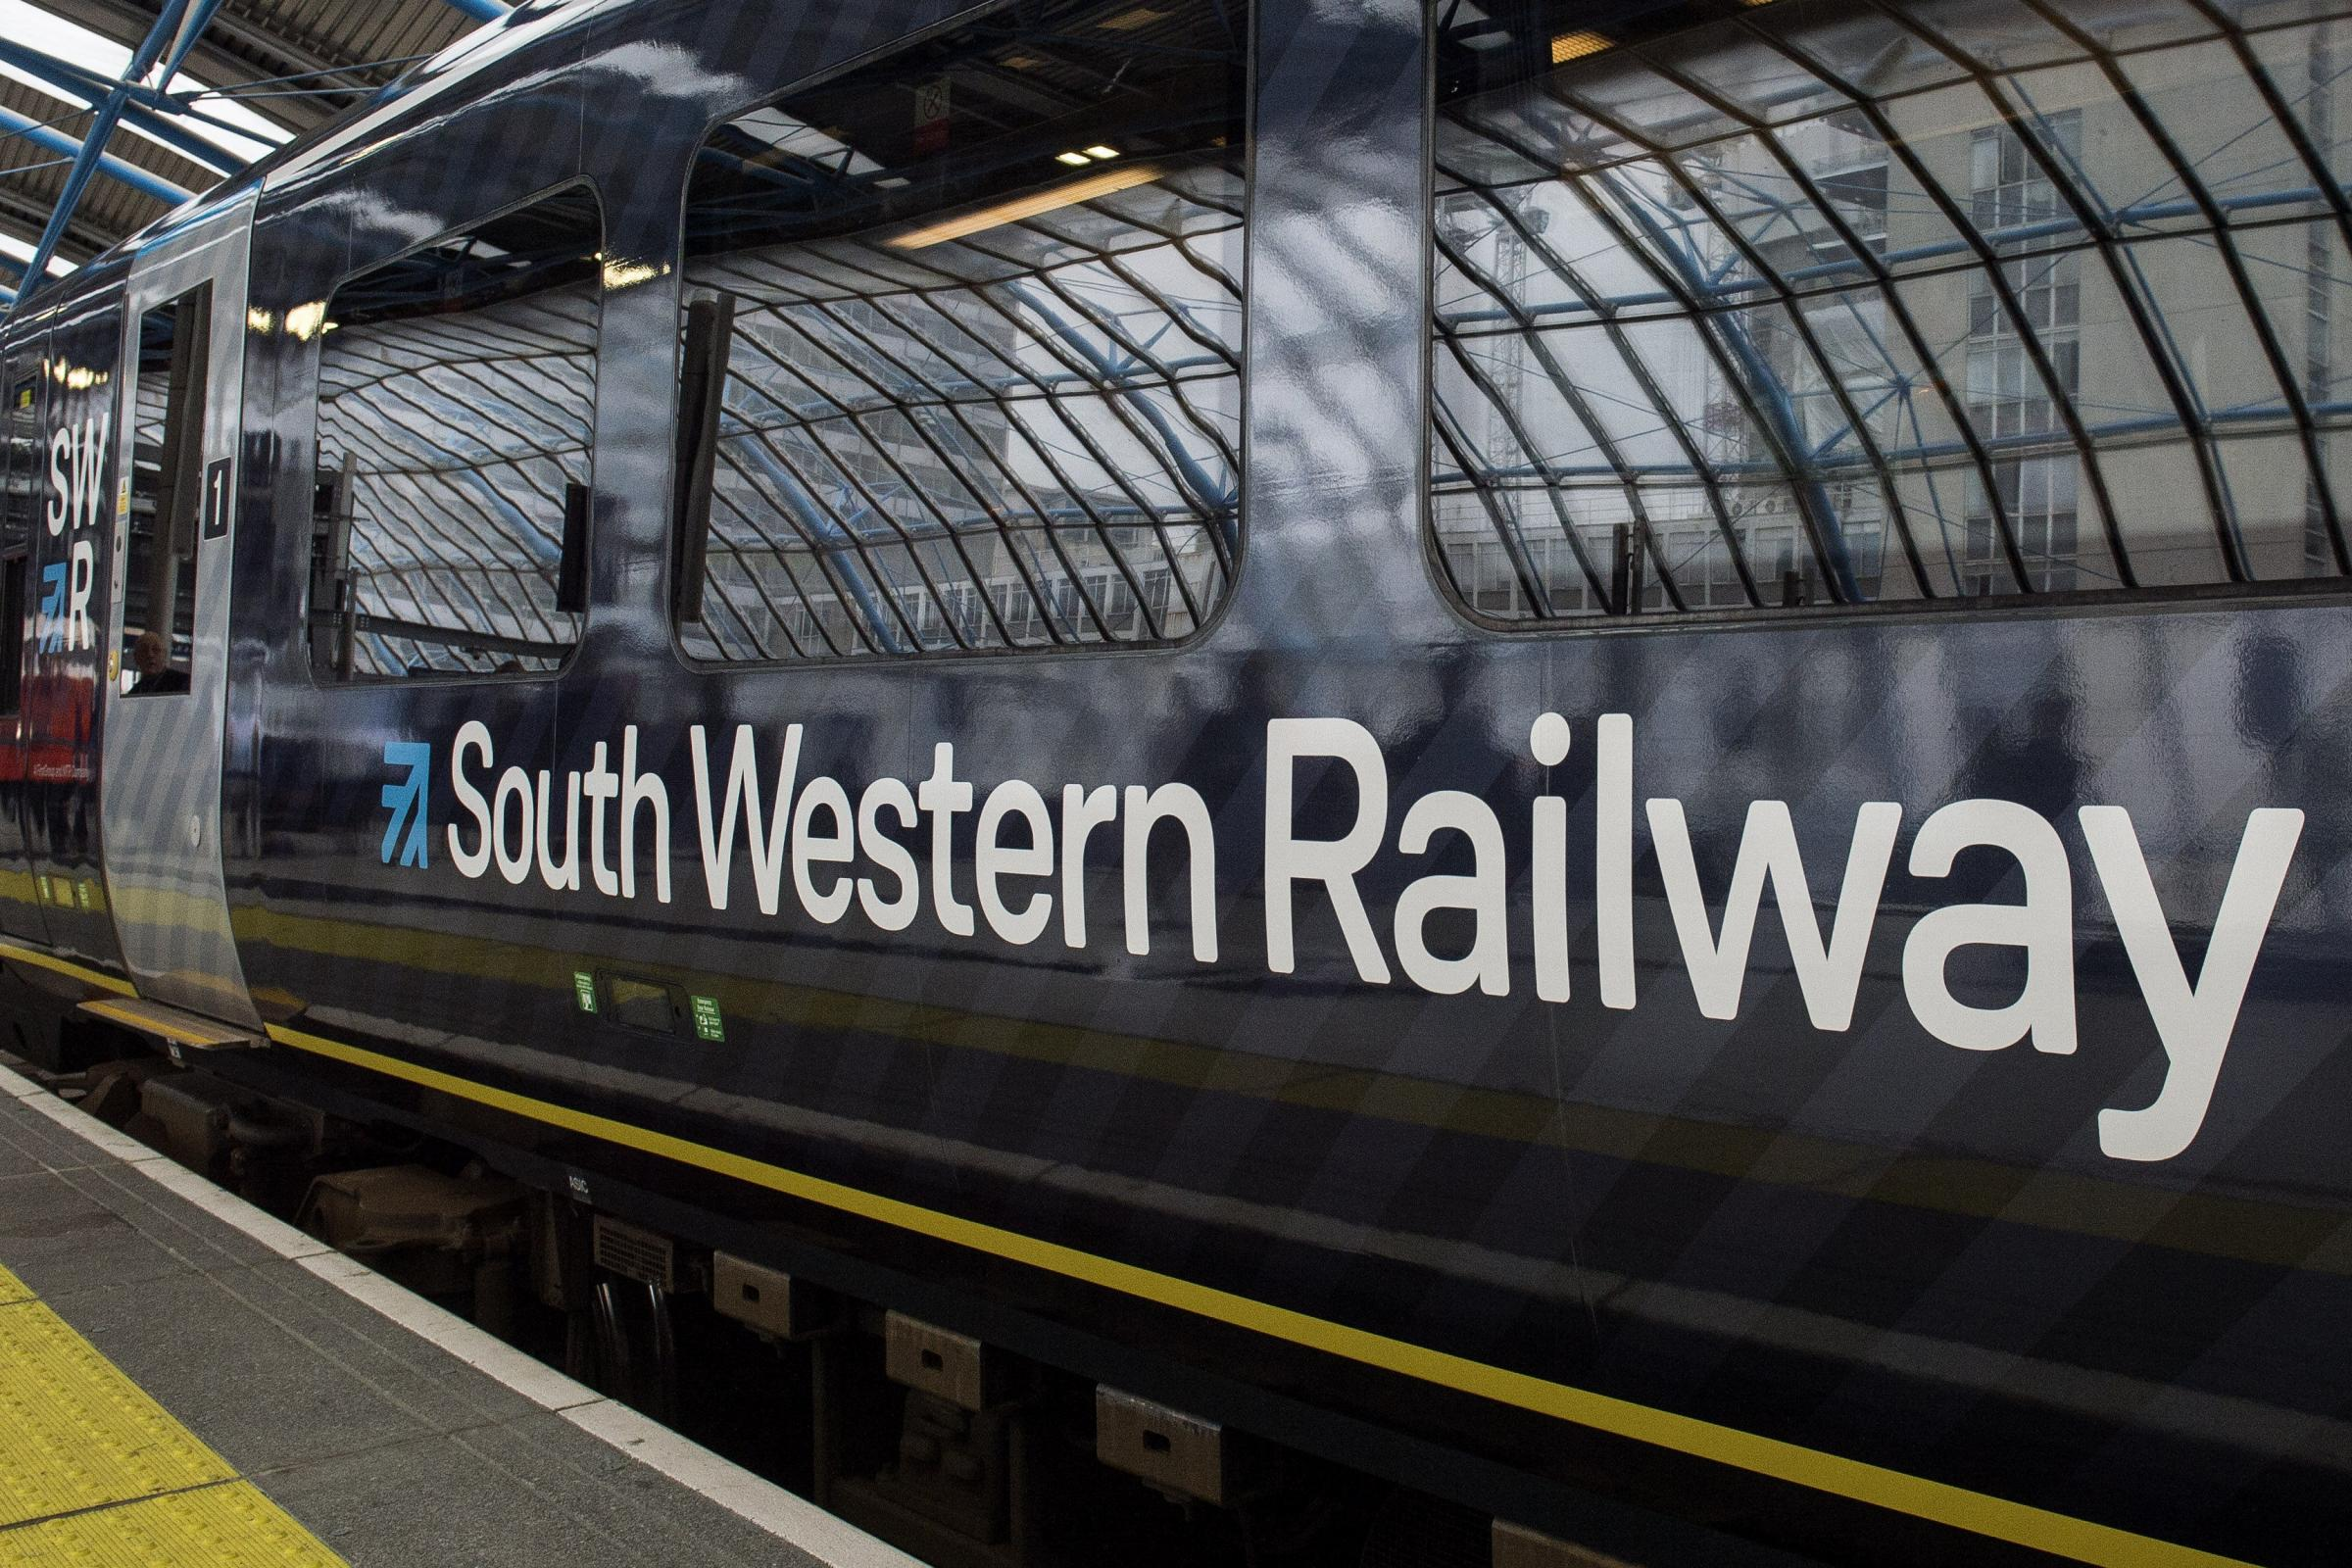 Trains cancelled between Weymouth and Bournemouth